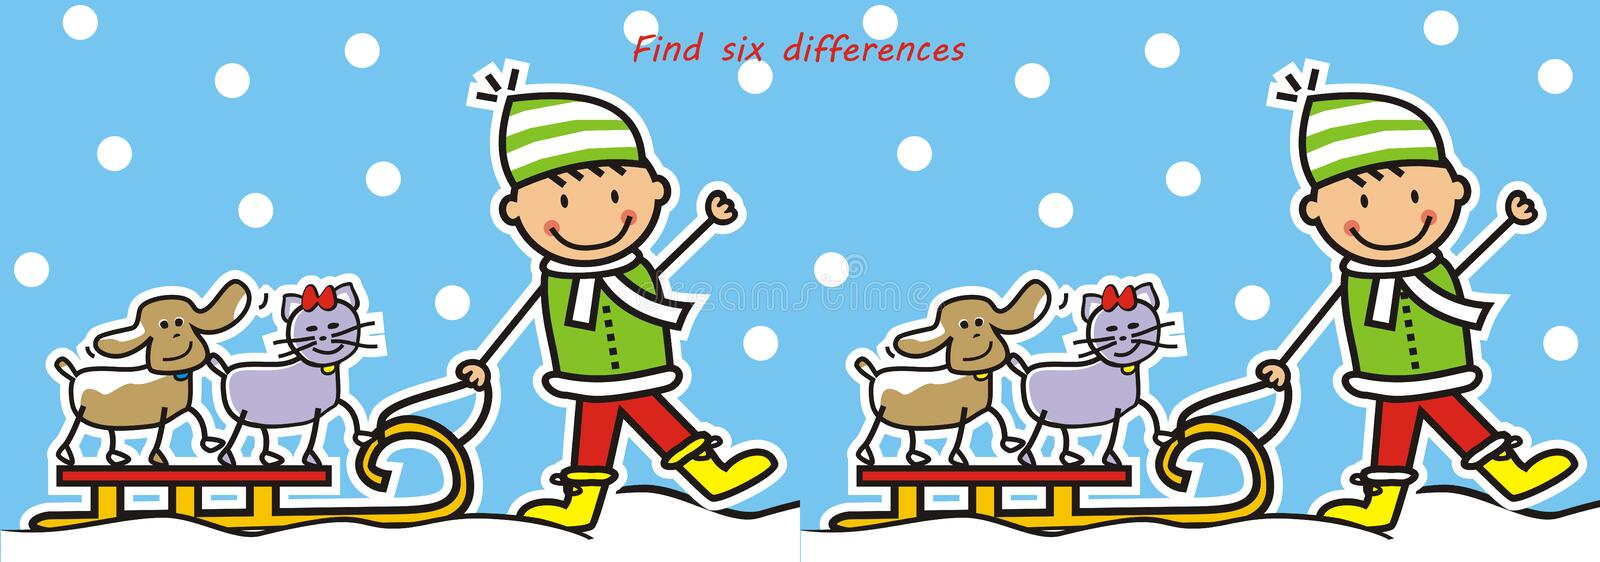 Board game for chidren, find six differences, winter game royalty free illustration